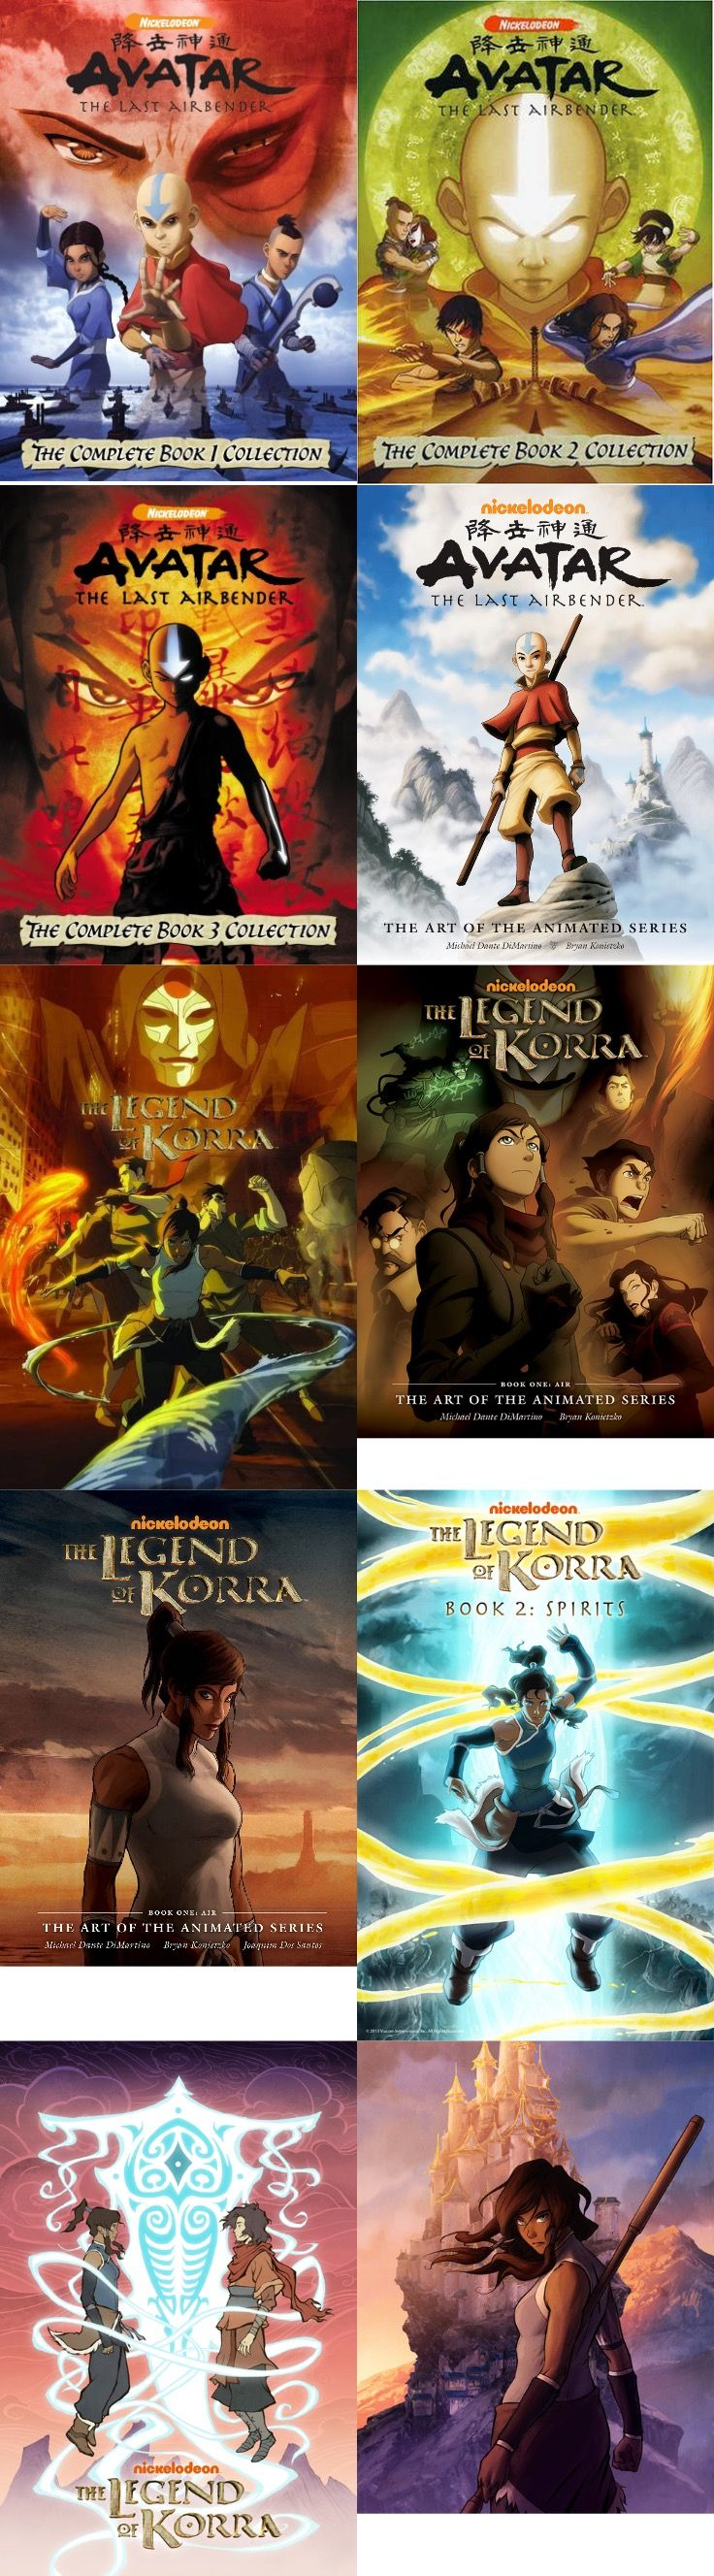 Avatar: the last airbender / the Legend of Korra Official Posters